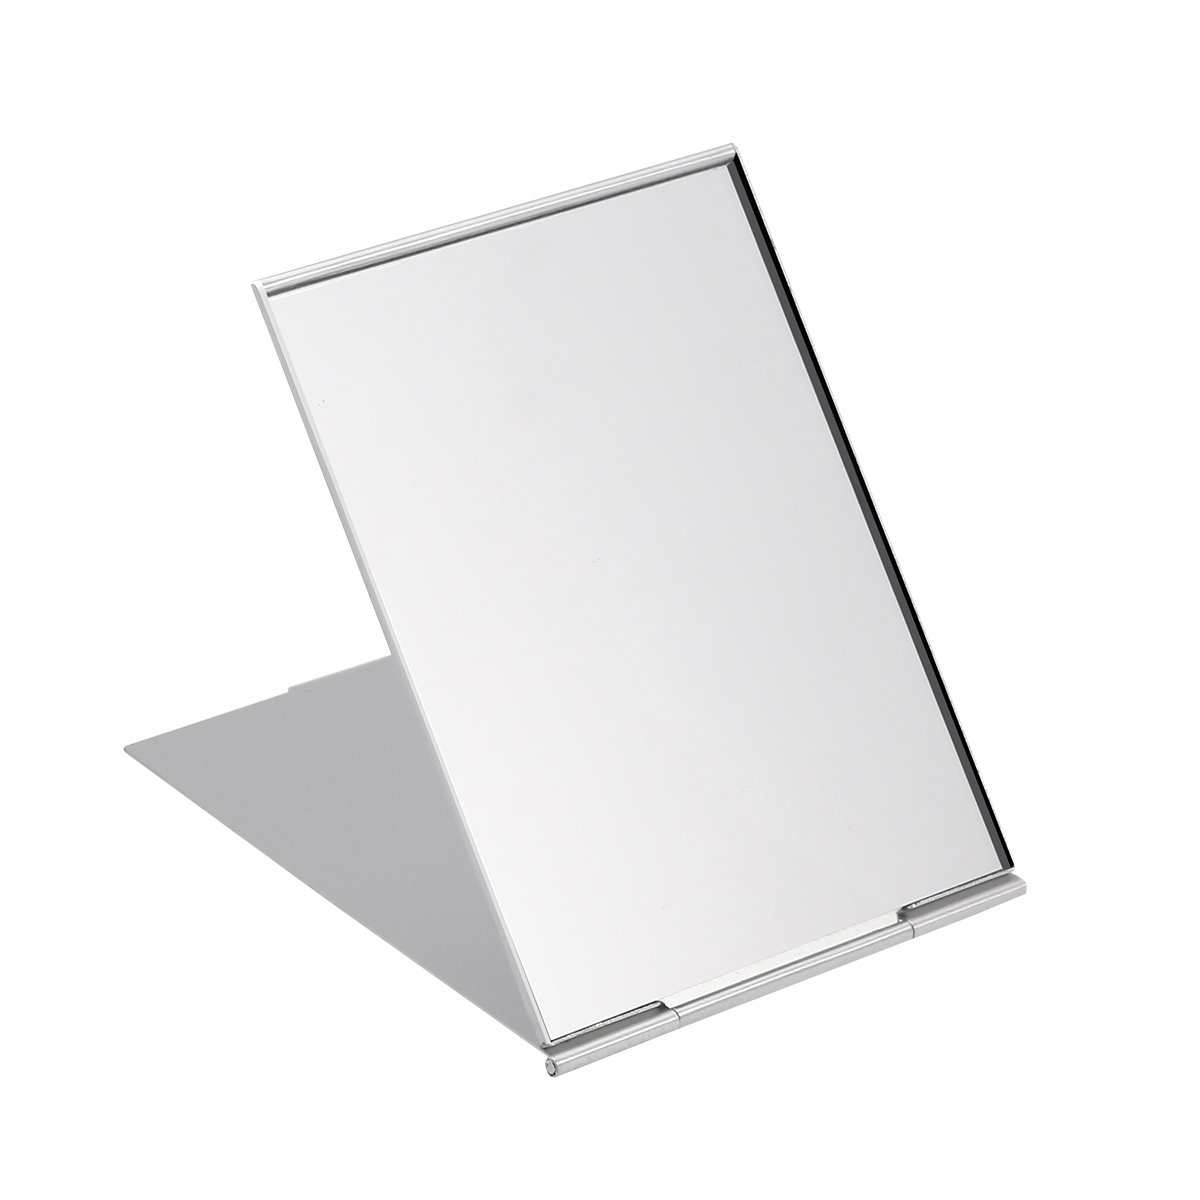 frcolor Portable Folding Mirror Only Hand Travel Shower Shaving Mirror